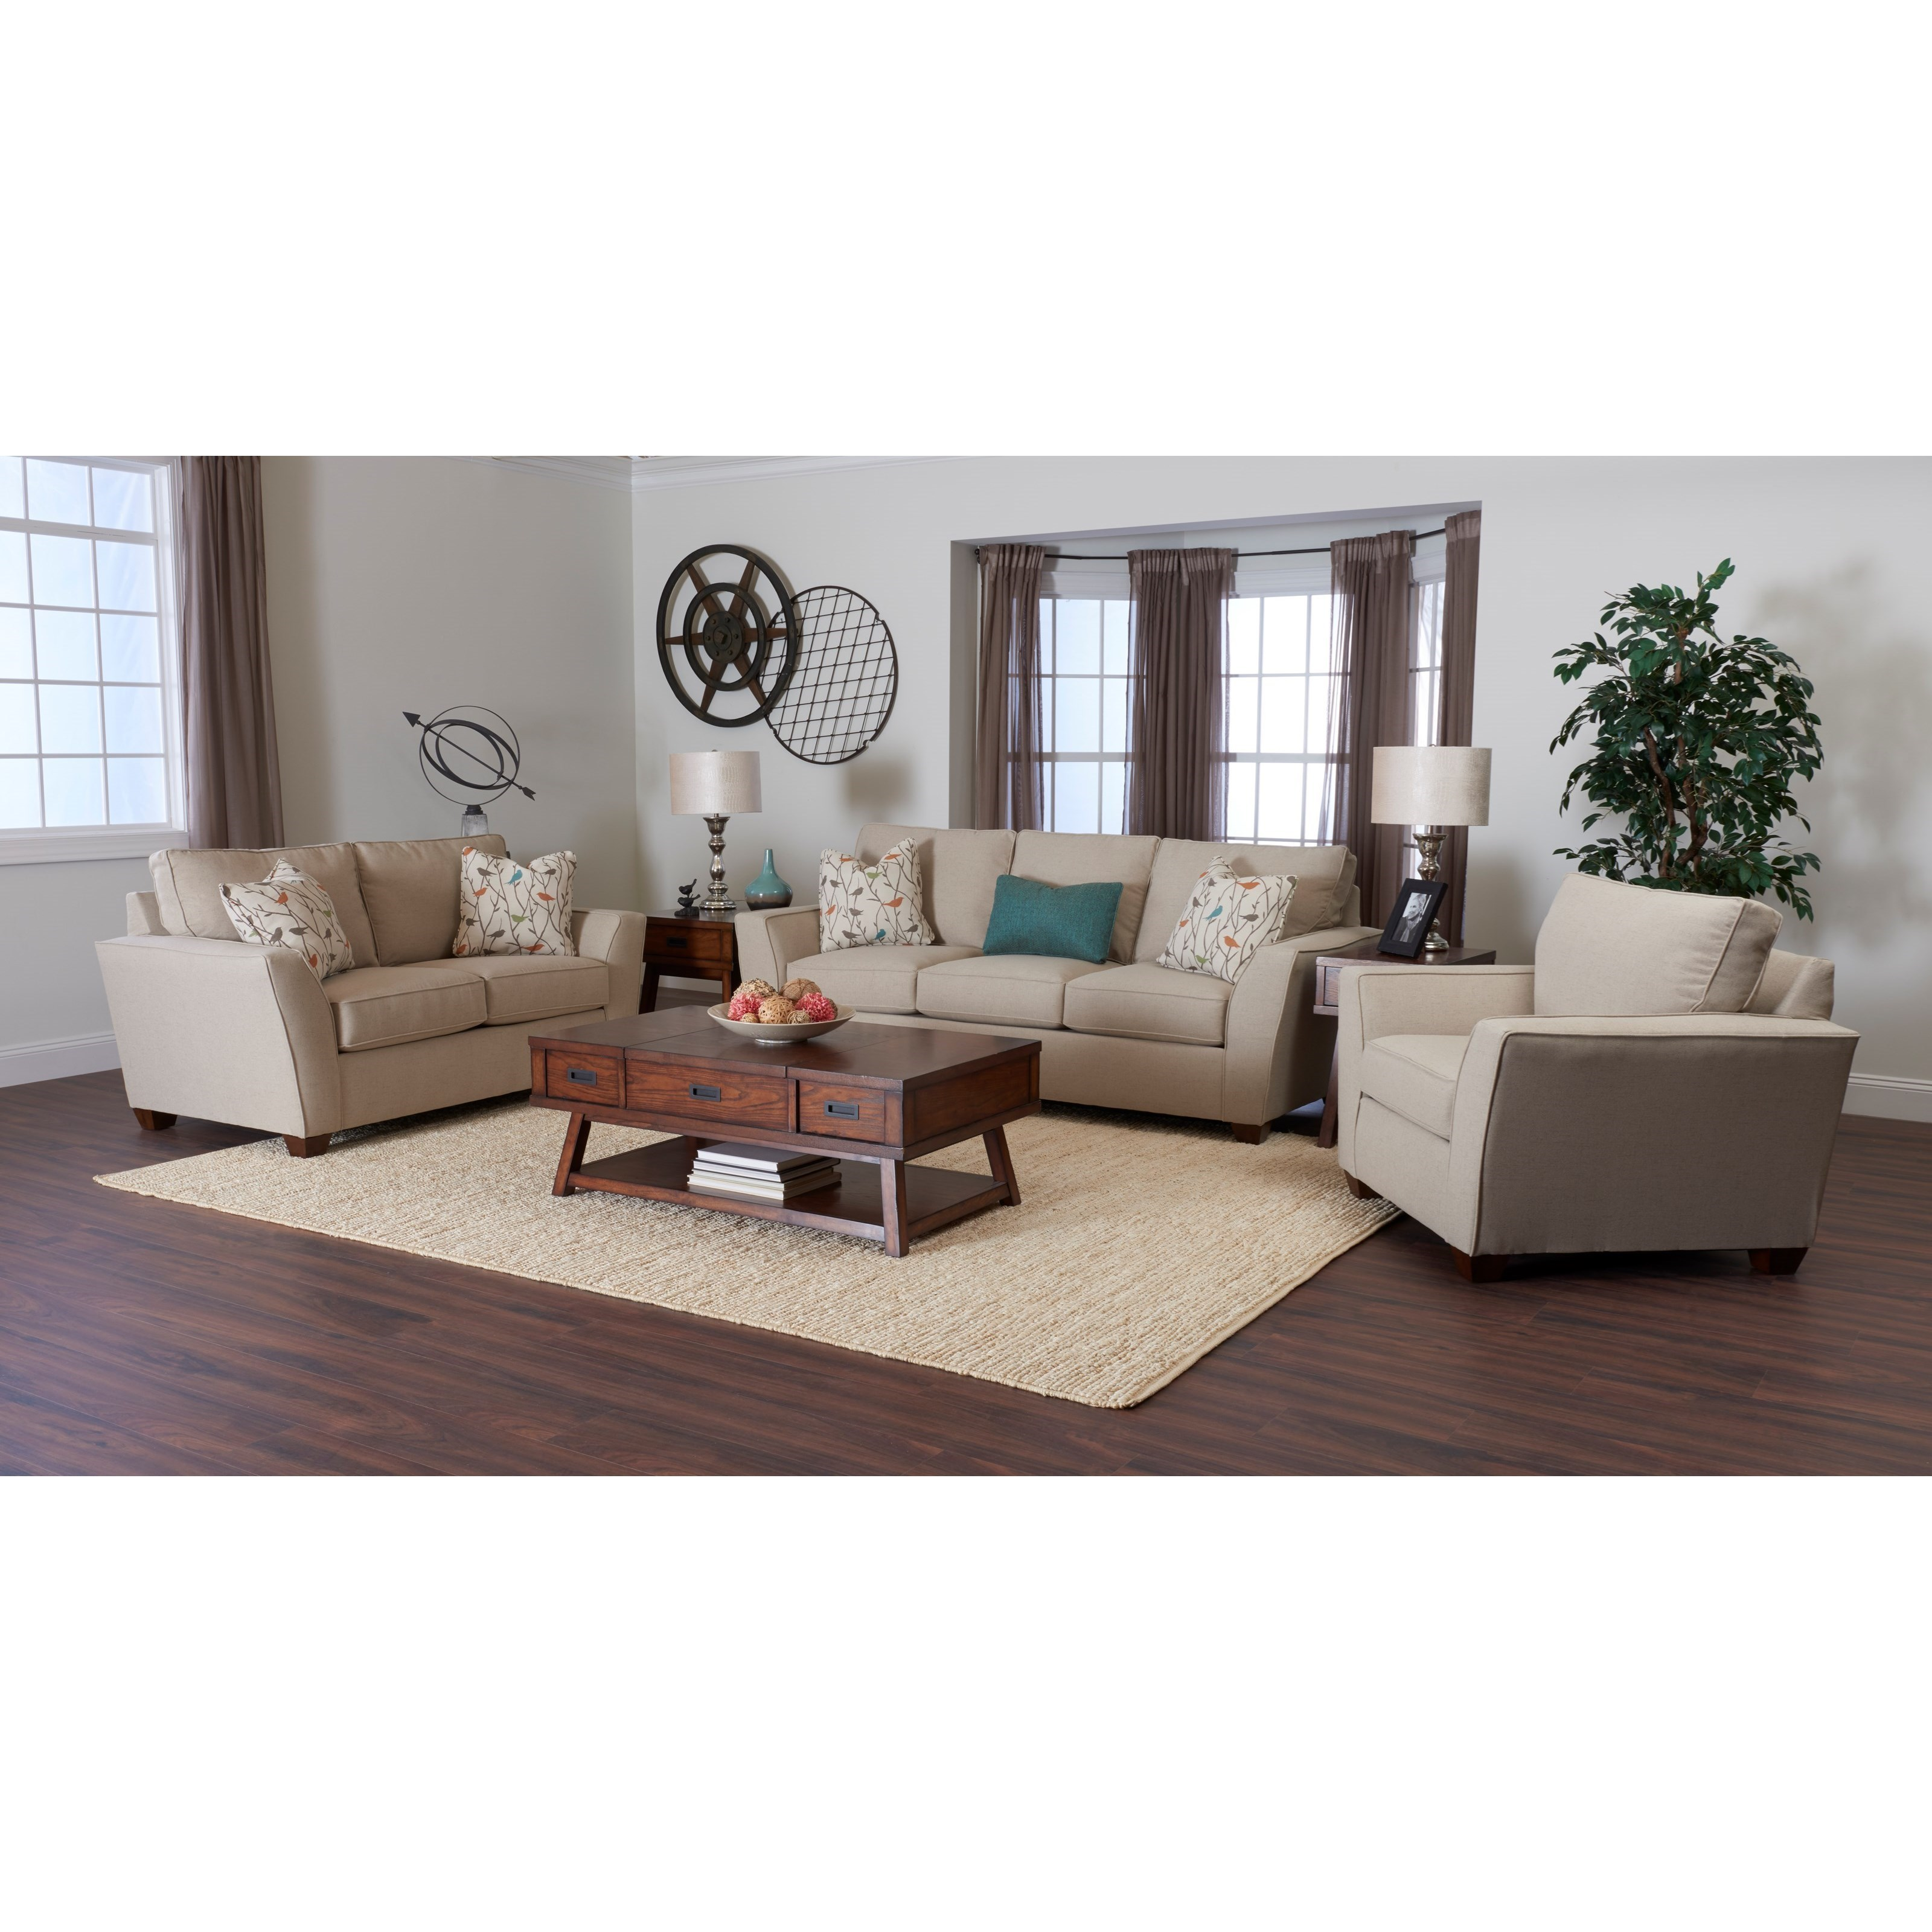 Klaussner Kent Living Room Group - Item Number: K75600 Living Room Group 1